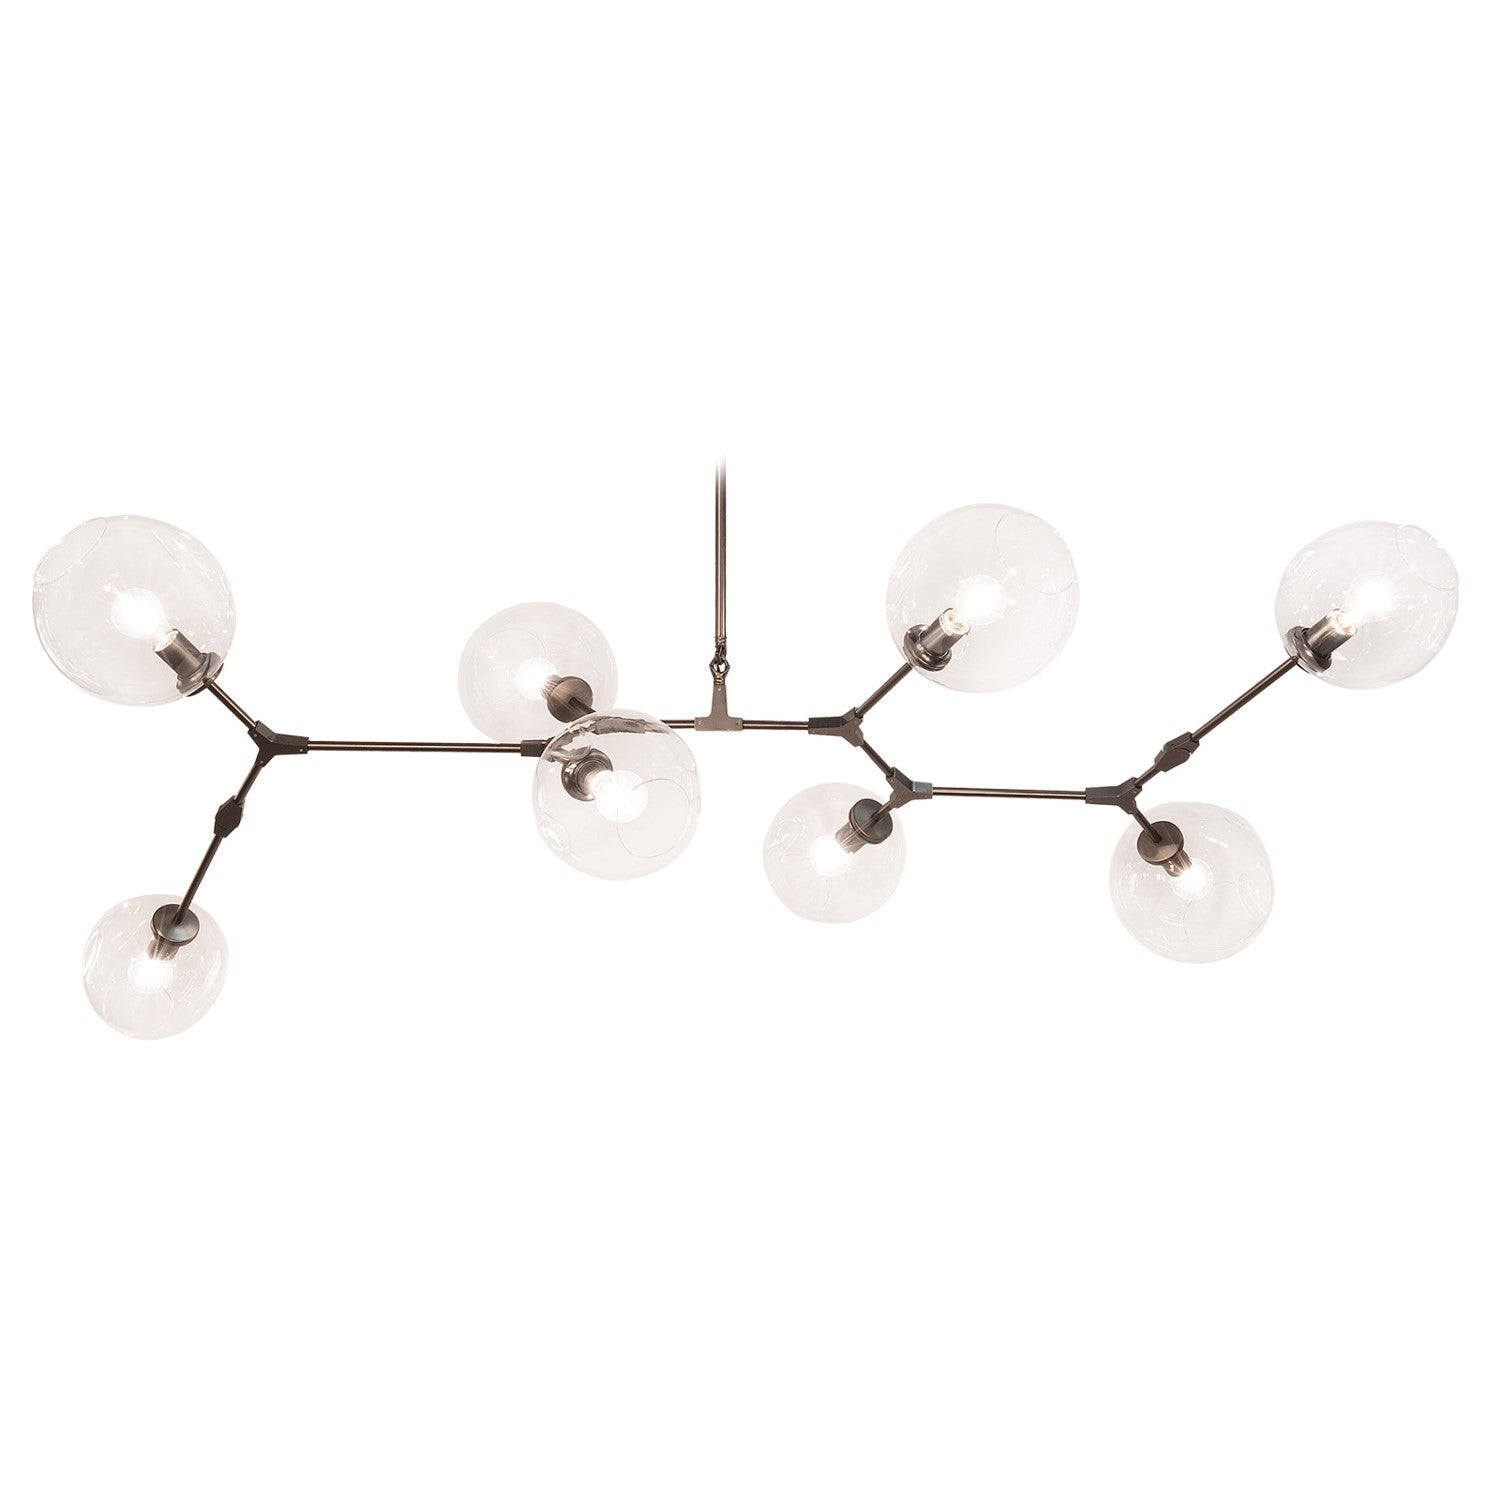 Fairfax Large Bronze Mid-Century Modern Linear Chandelier with Clear Glass Globes by Avenue Lighting HF8088-DBZ